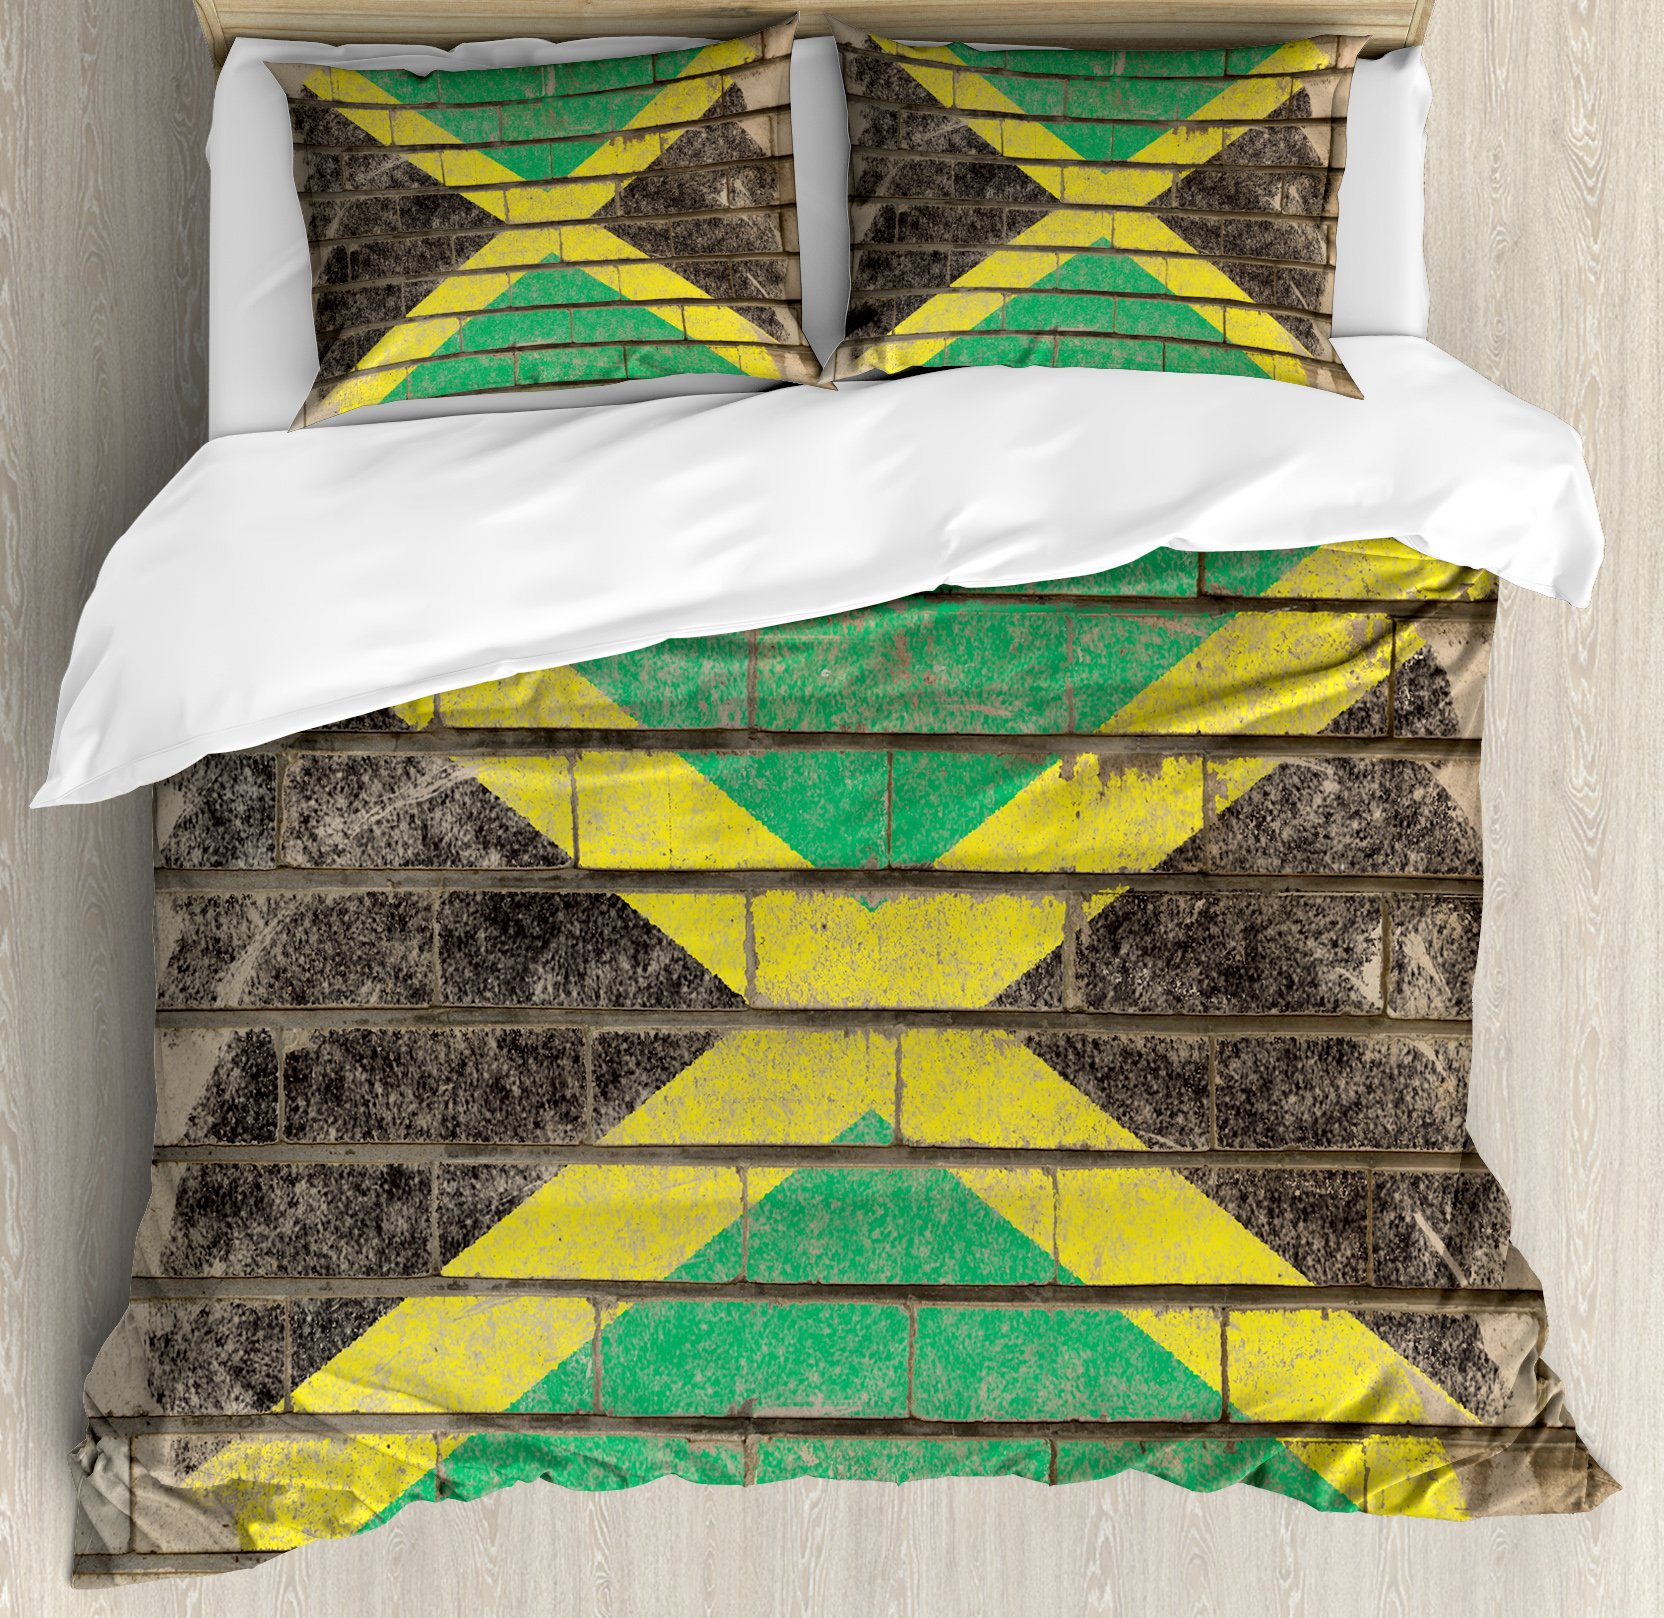 Jamaican Duvet Cover Set King Size by Ambesonne, Flag on the Wall Illustration with Chalk Effect Old Bricks Grunge Design Caribbean, Decorative 3 Piece Bedding Set with 2 Pillow Shams, Multicolor